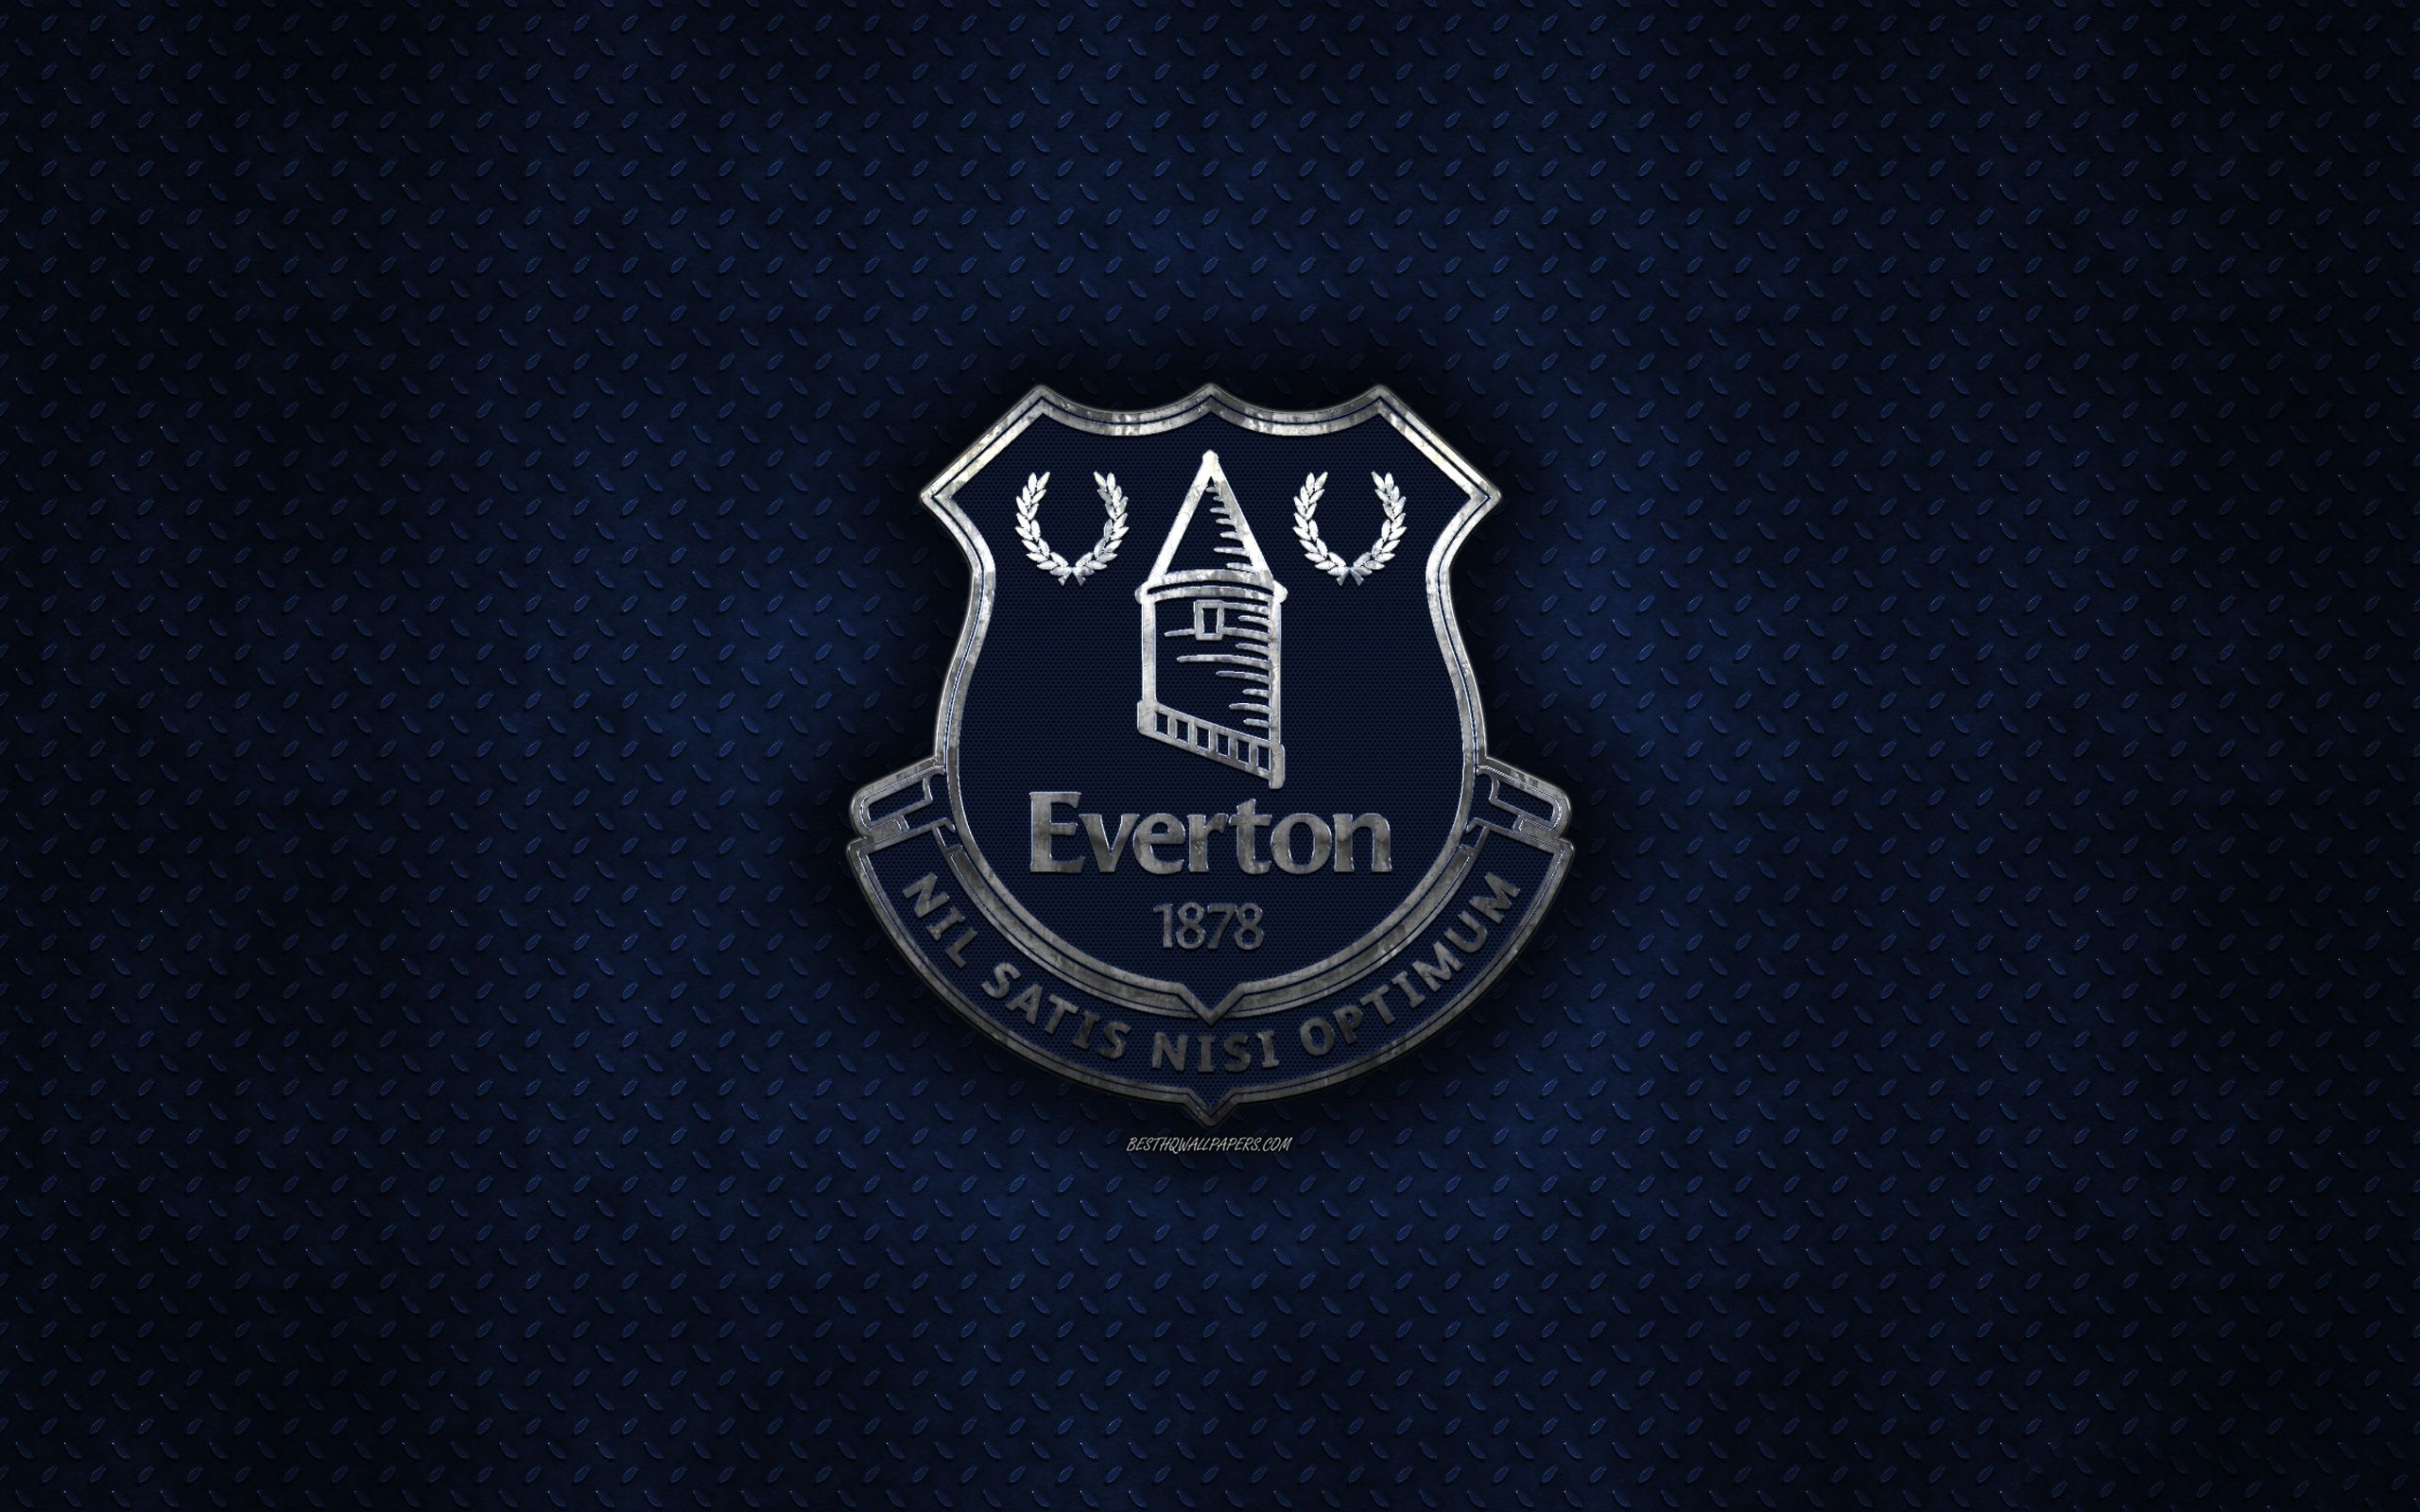 Everton Football Club Wallpapers Top Free Everton Football Club Backgrounds Wallpaperaccess